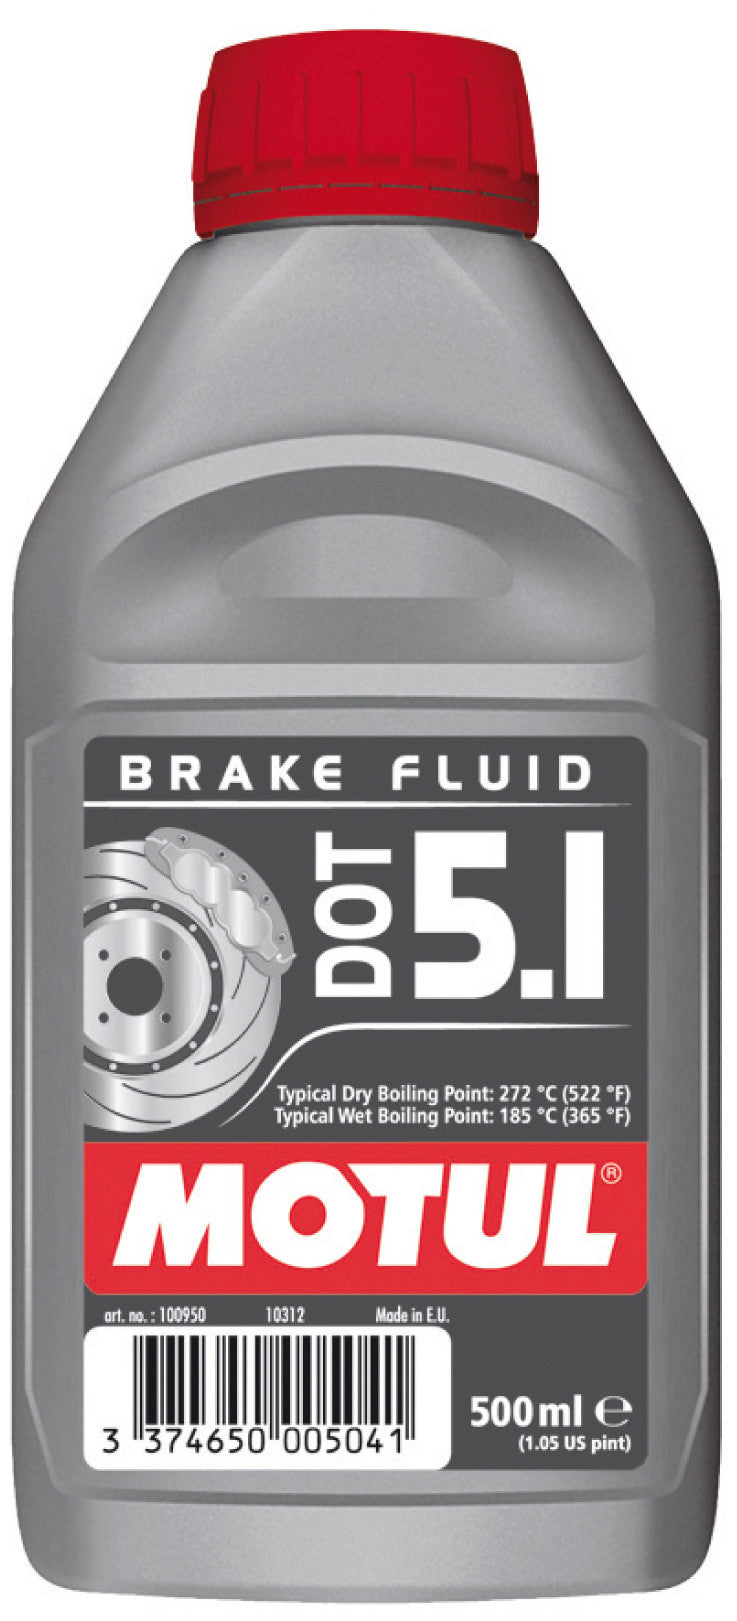 MOTUL Brake Fluid: DOT 5.1 - 100951